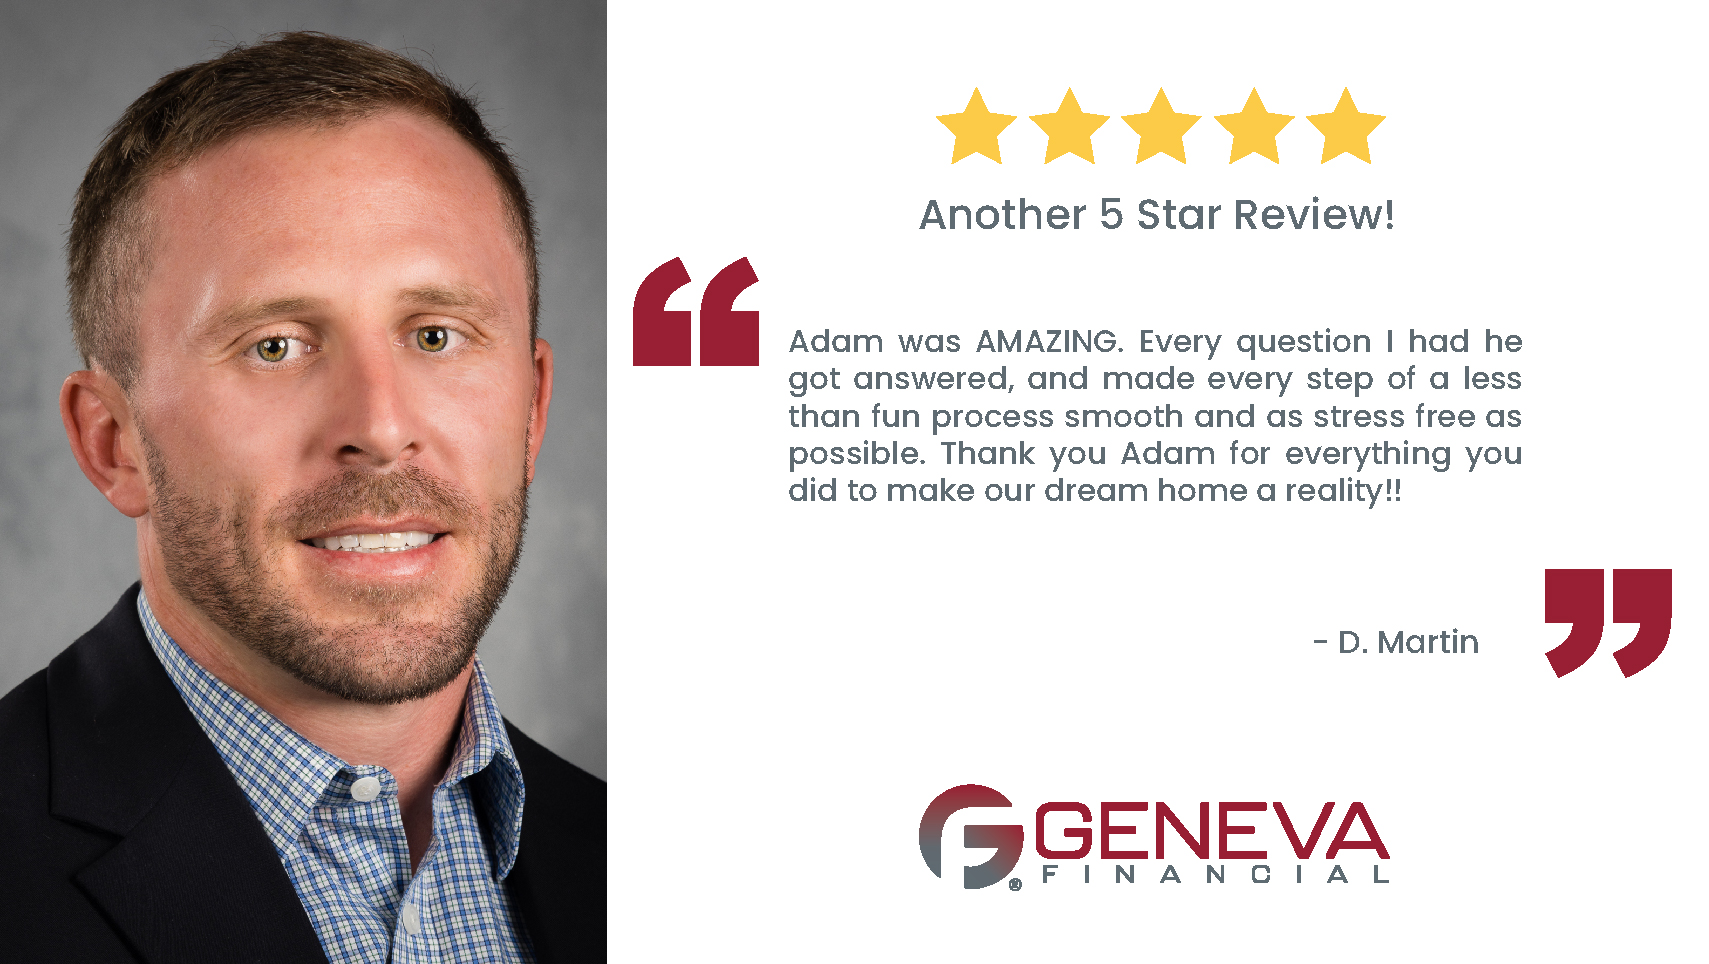 Adam Gjerulff, Branch Manager, serving the states of Virginia, Florida, and Maryland